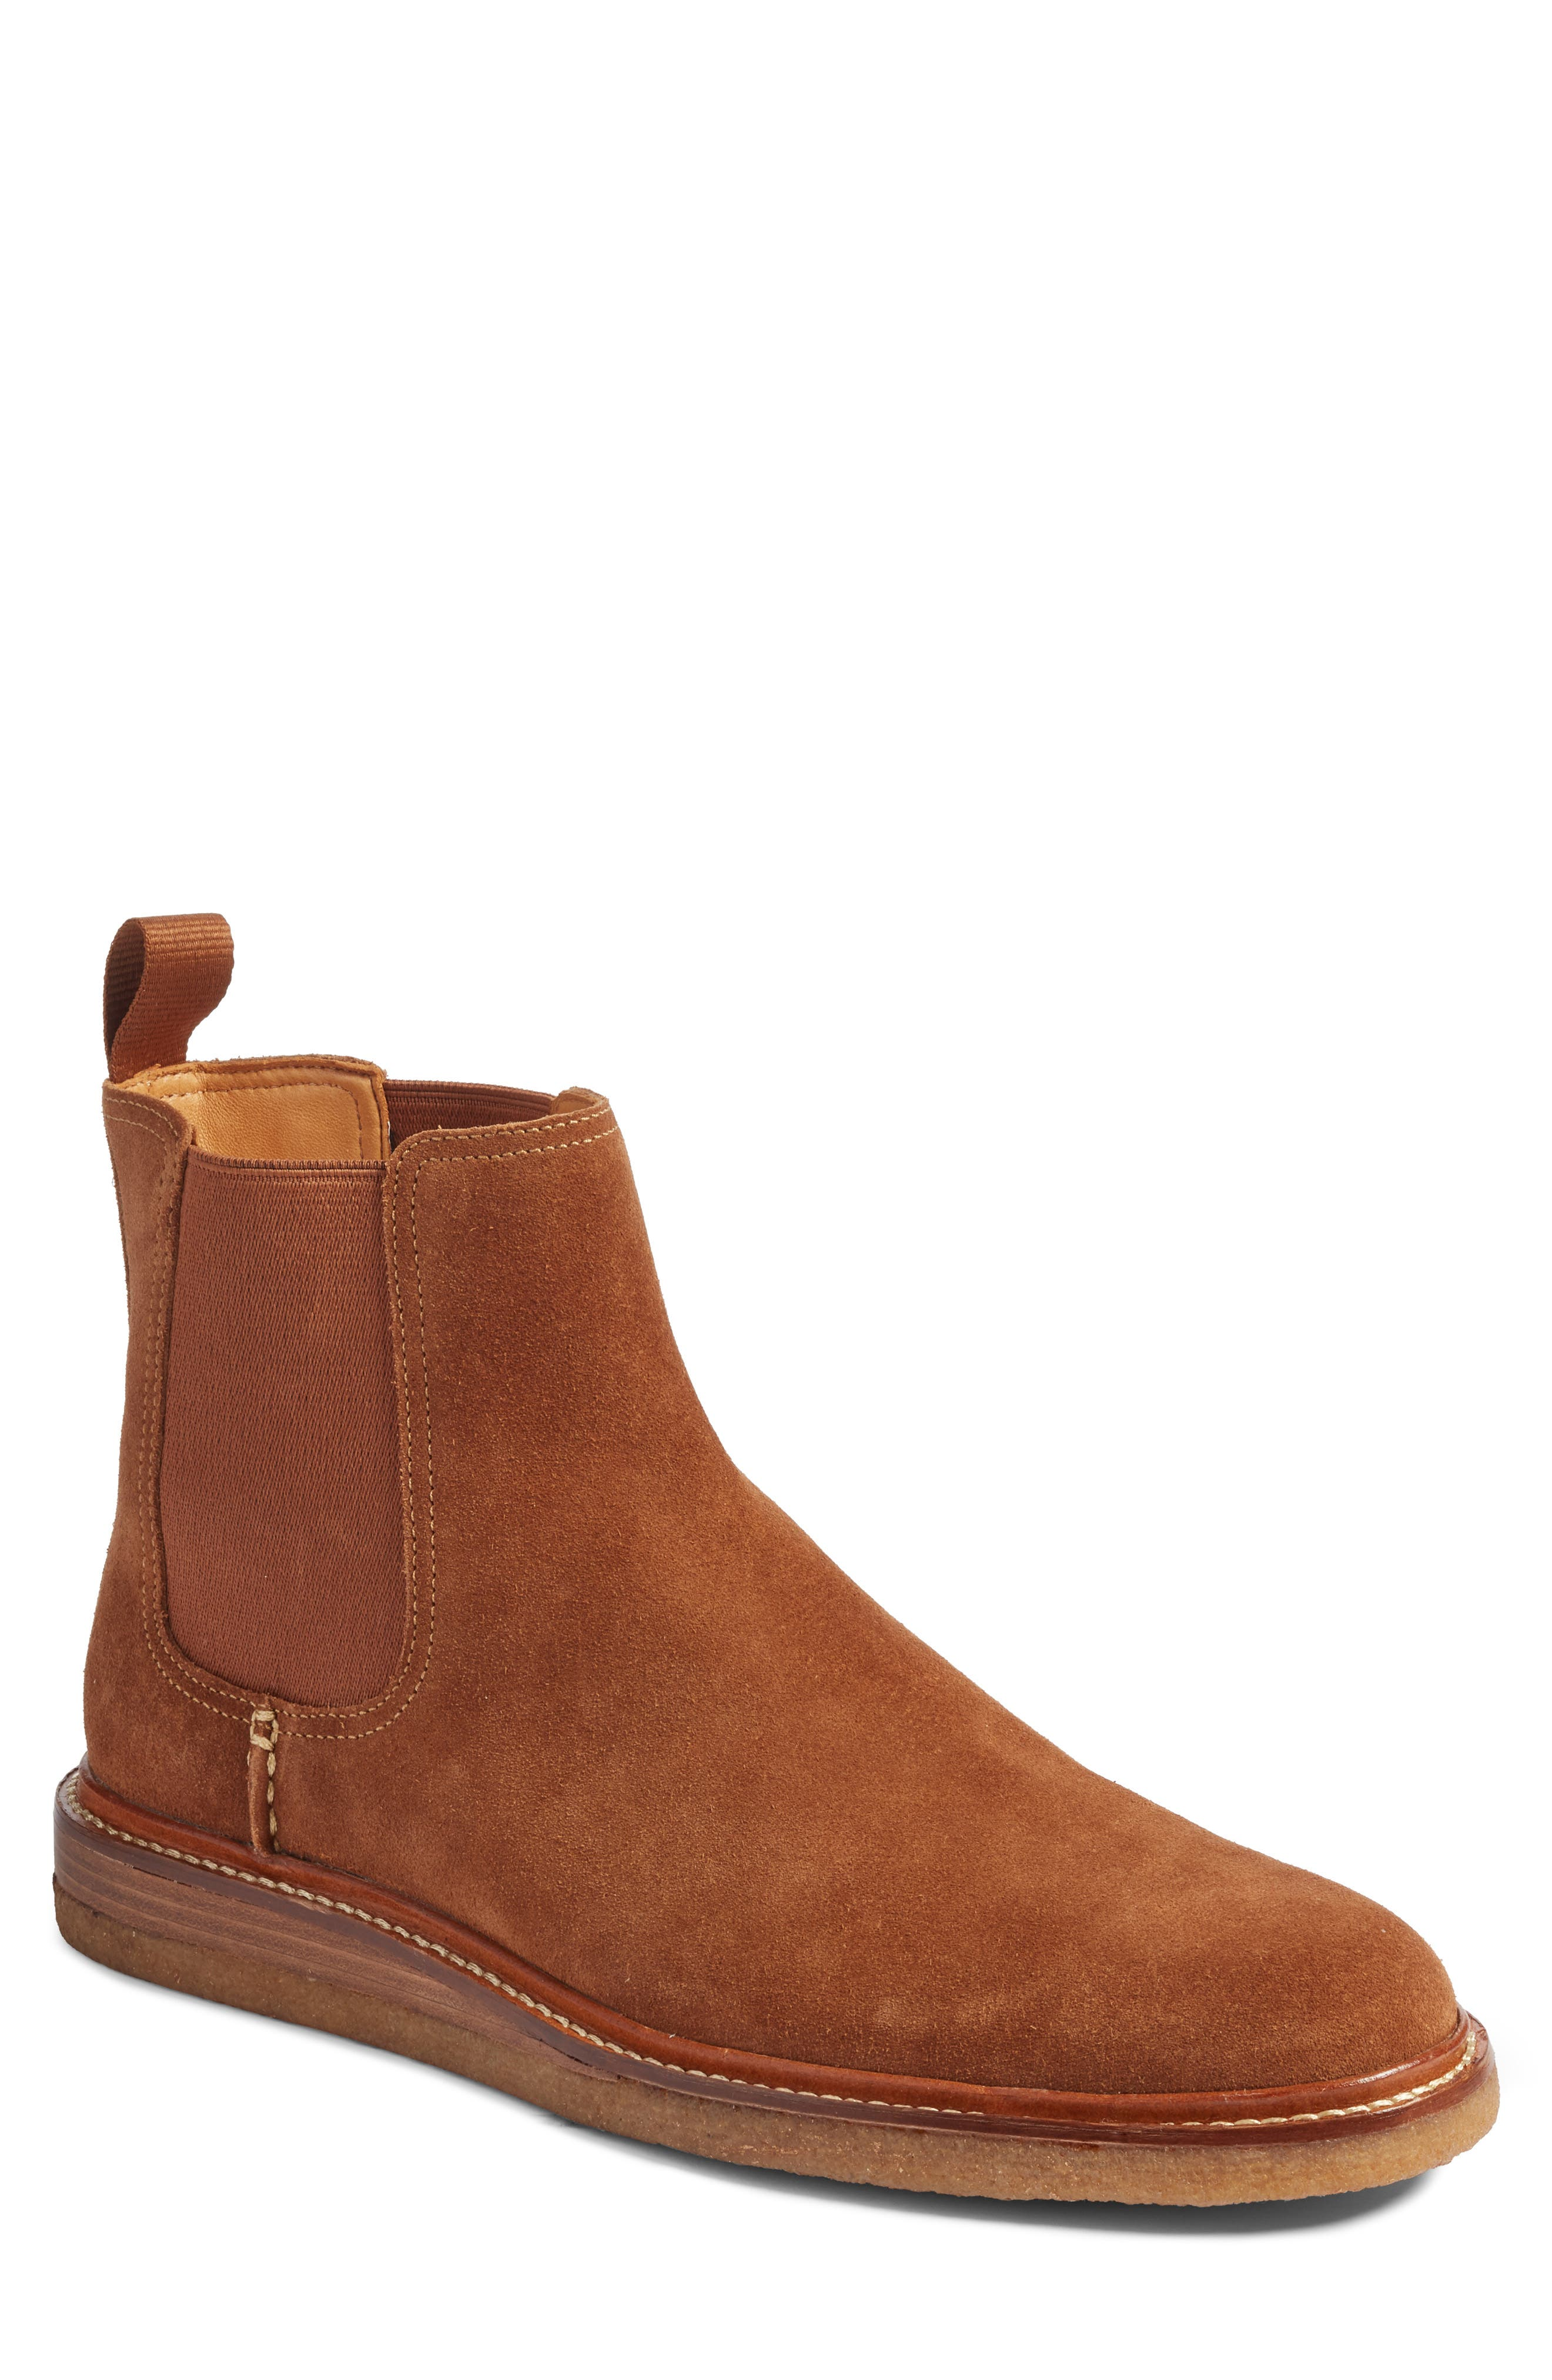 Leather Chelsea Boot,                         Main,                         color, Dark Snuff Leather